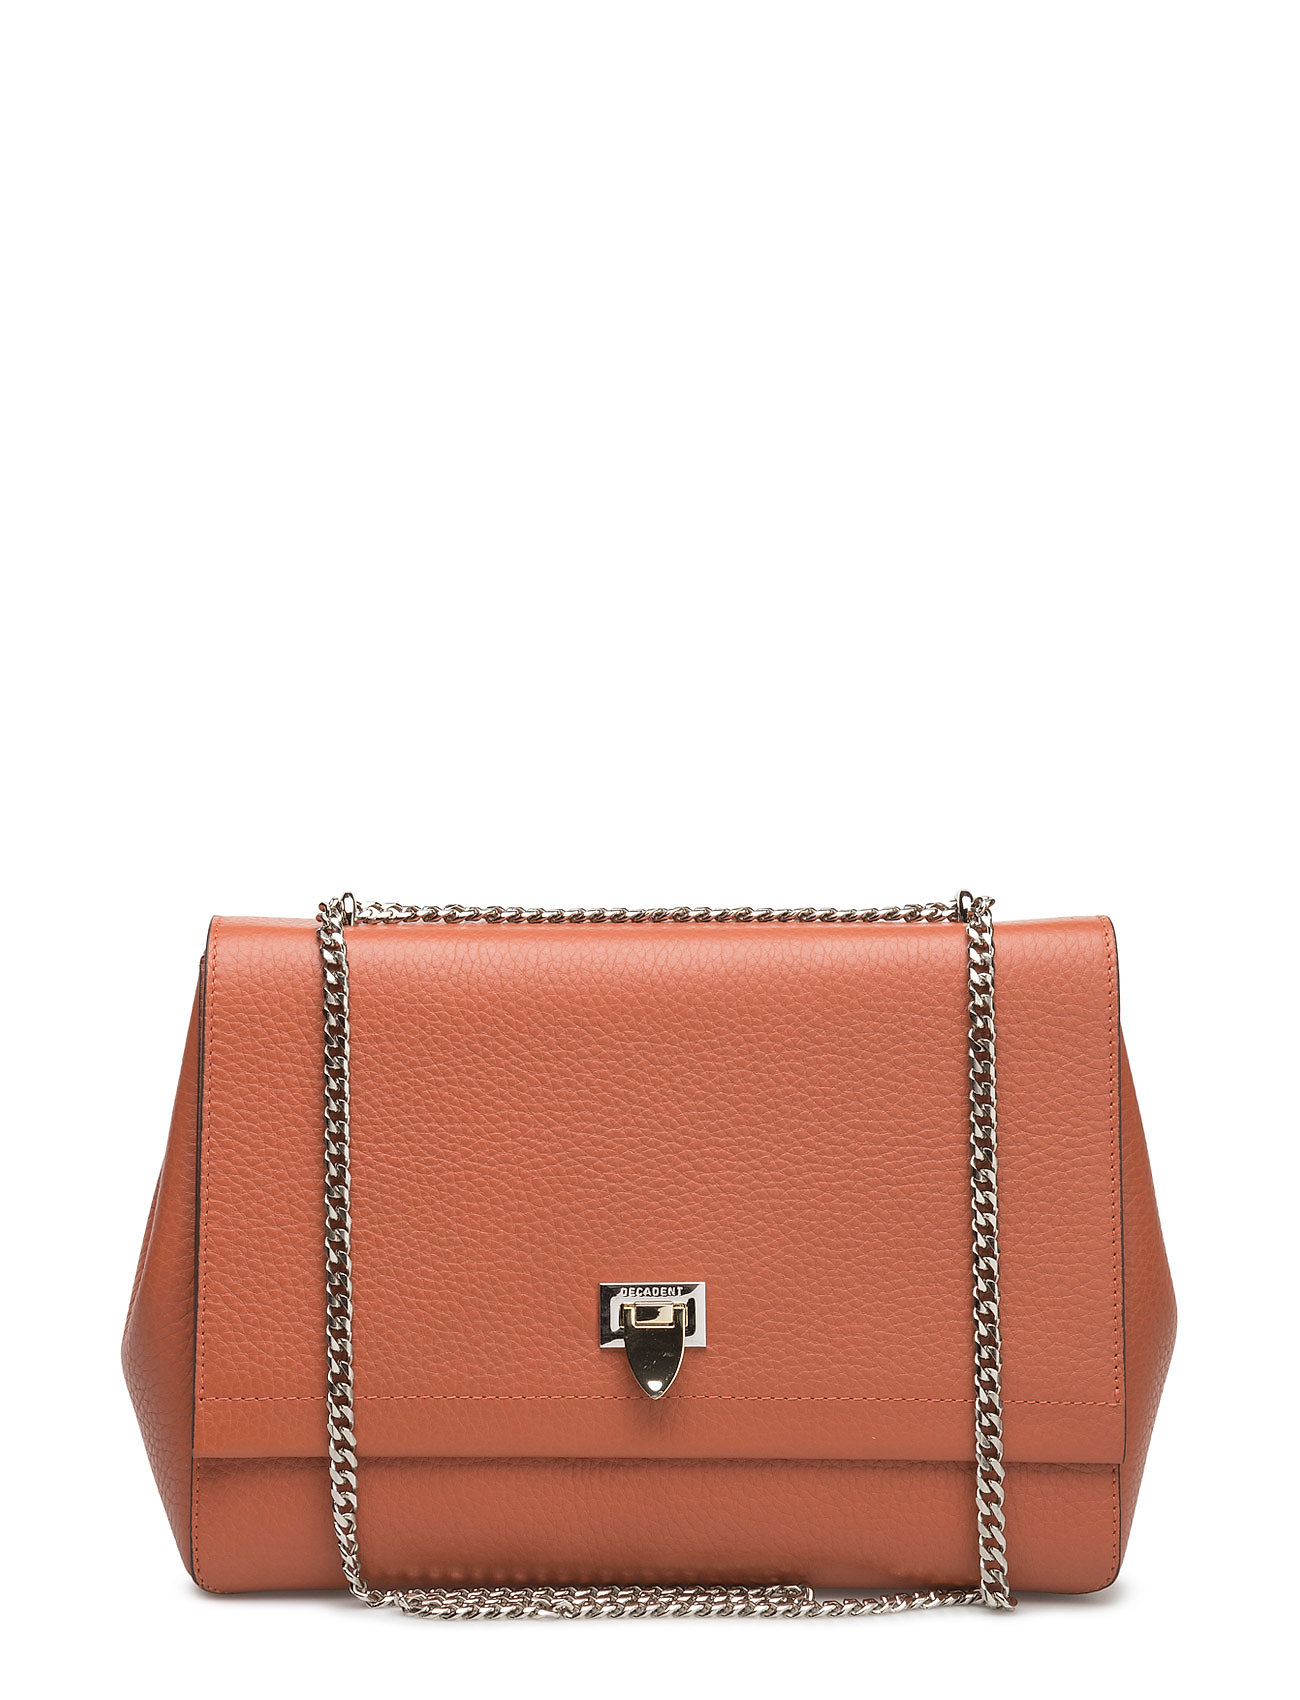 decadent – Big bag with buckle and chain på boozt.com dk